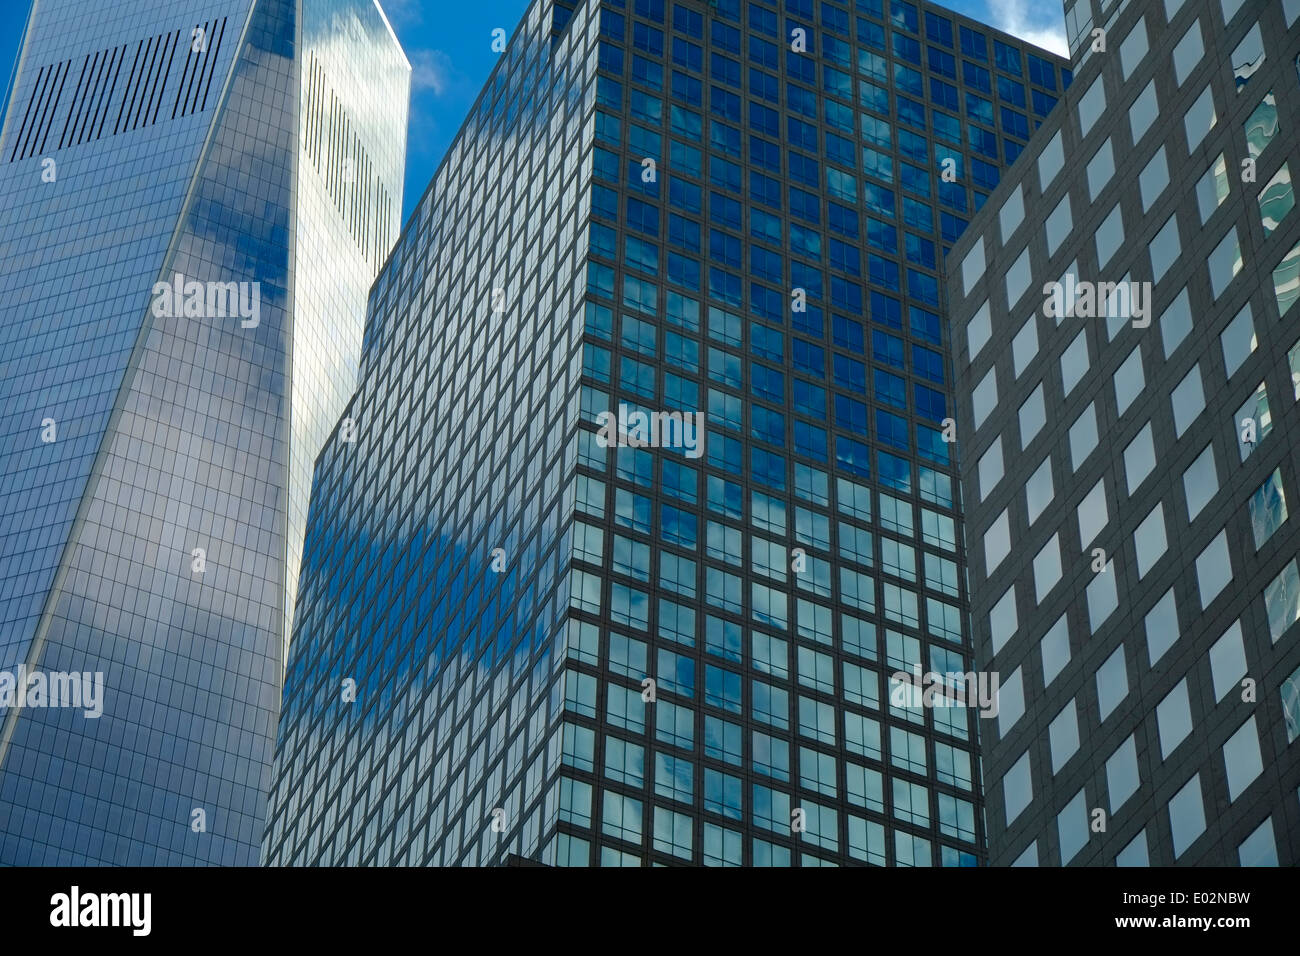 Modern office buildings, Financial district, Manhattan, New York - Stock Image